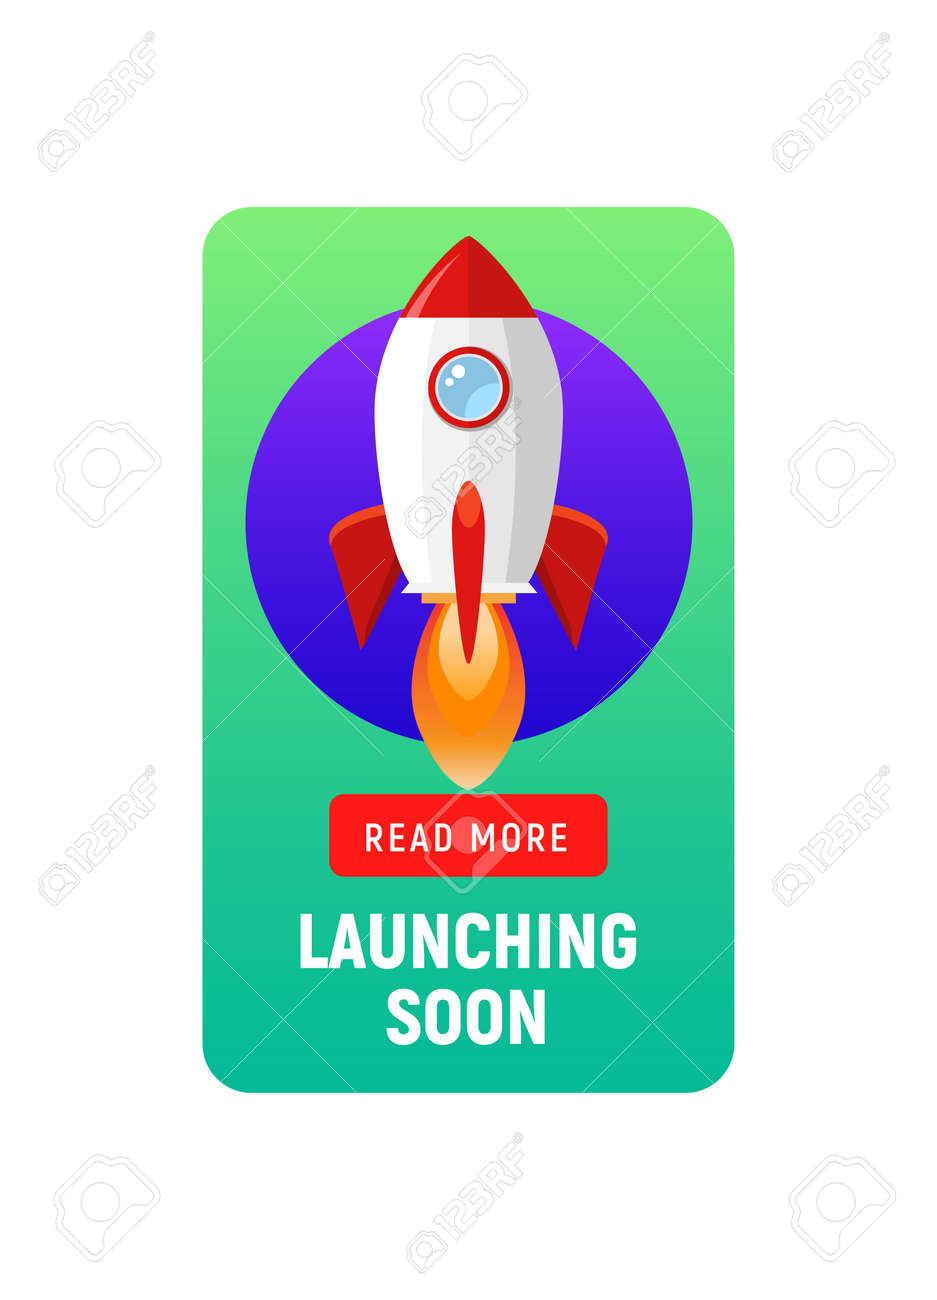 Launching soon marketing store template. Coming soon announcement flyer banner. - 168932609